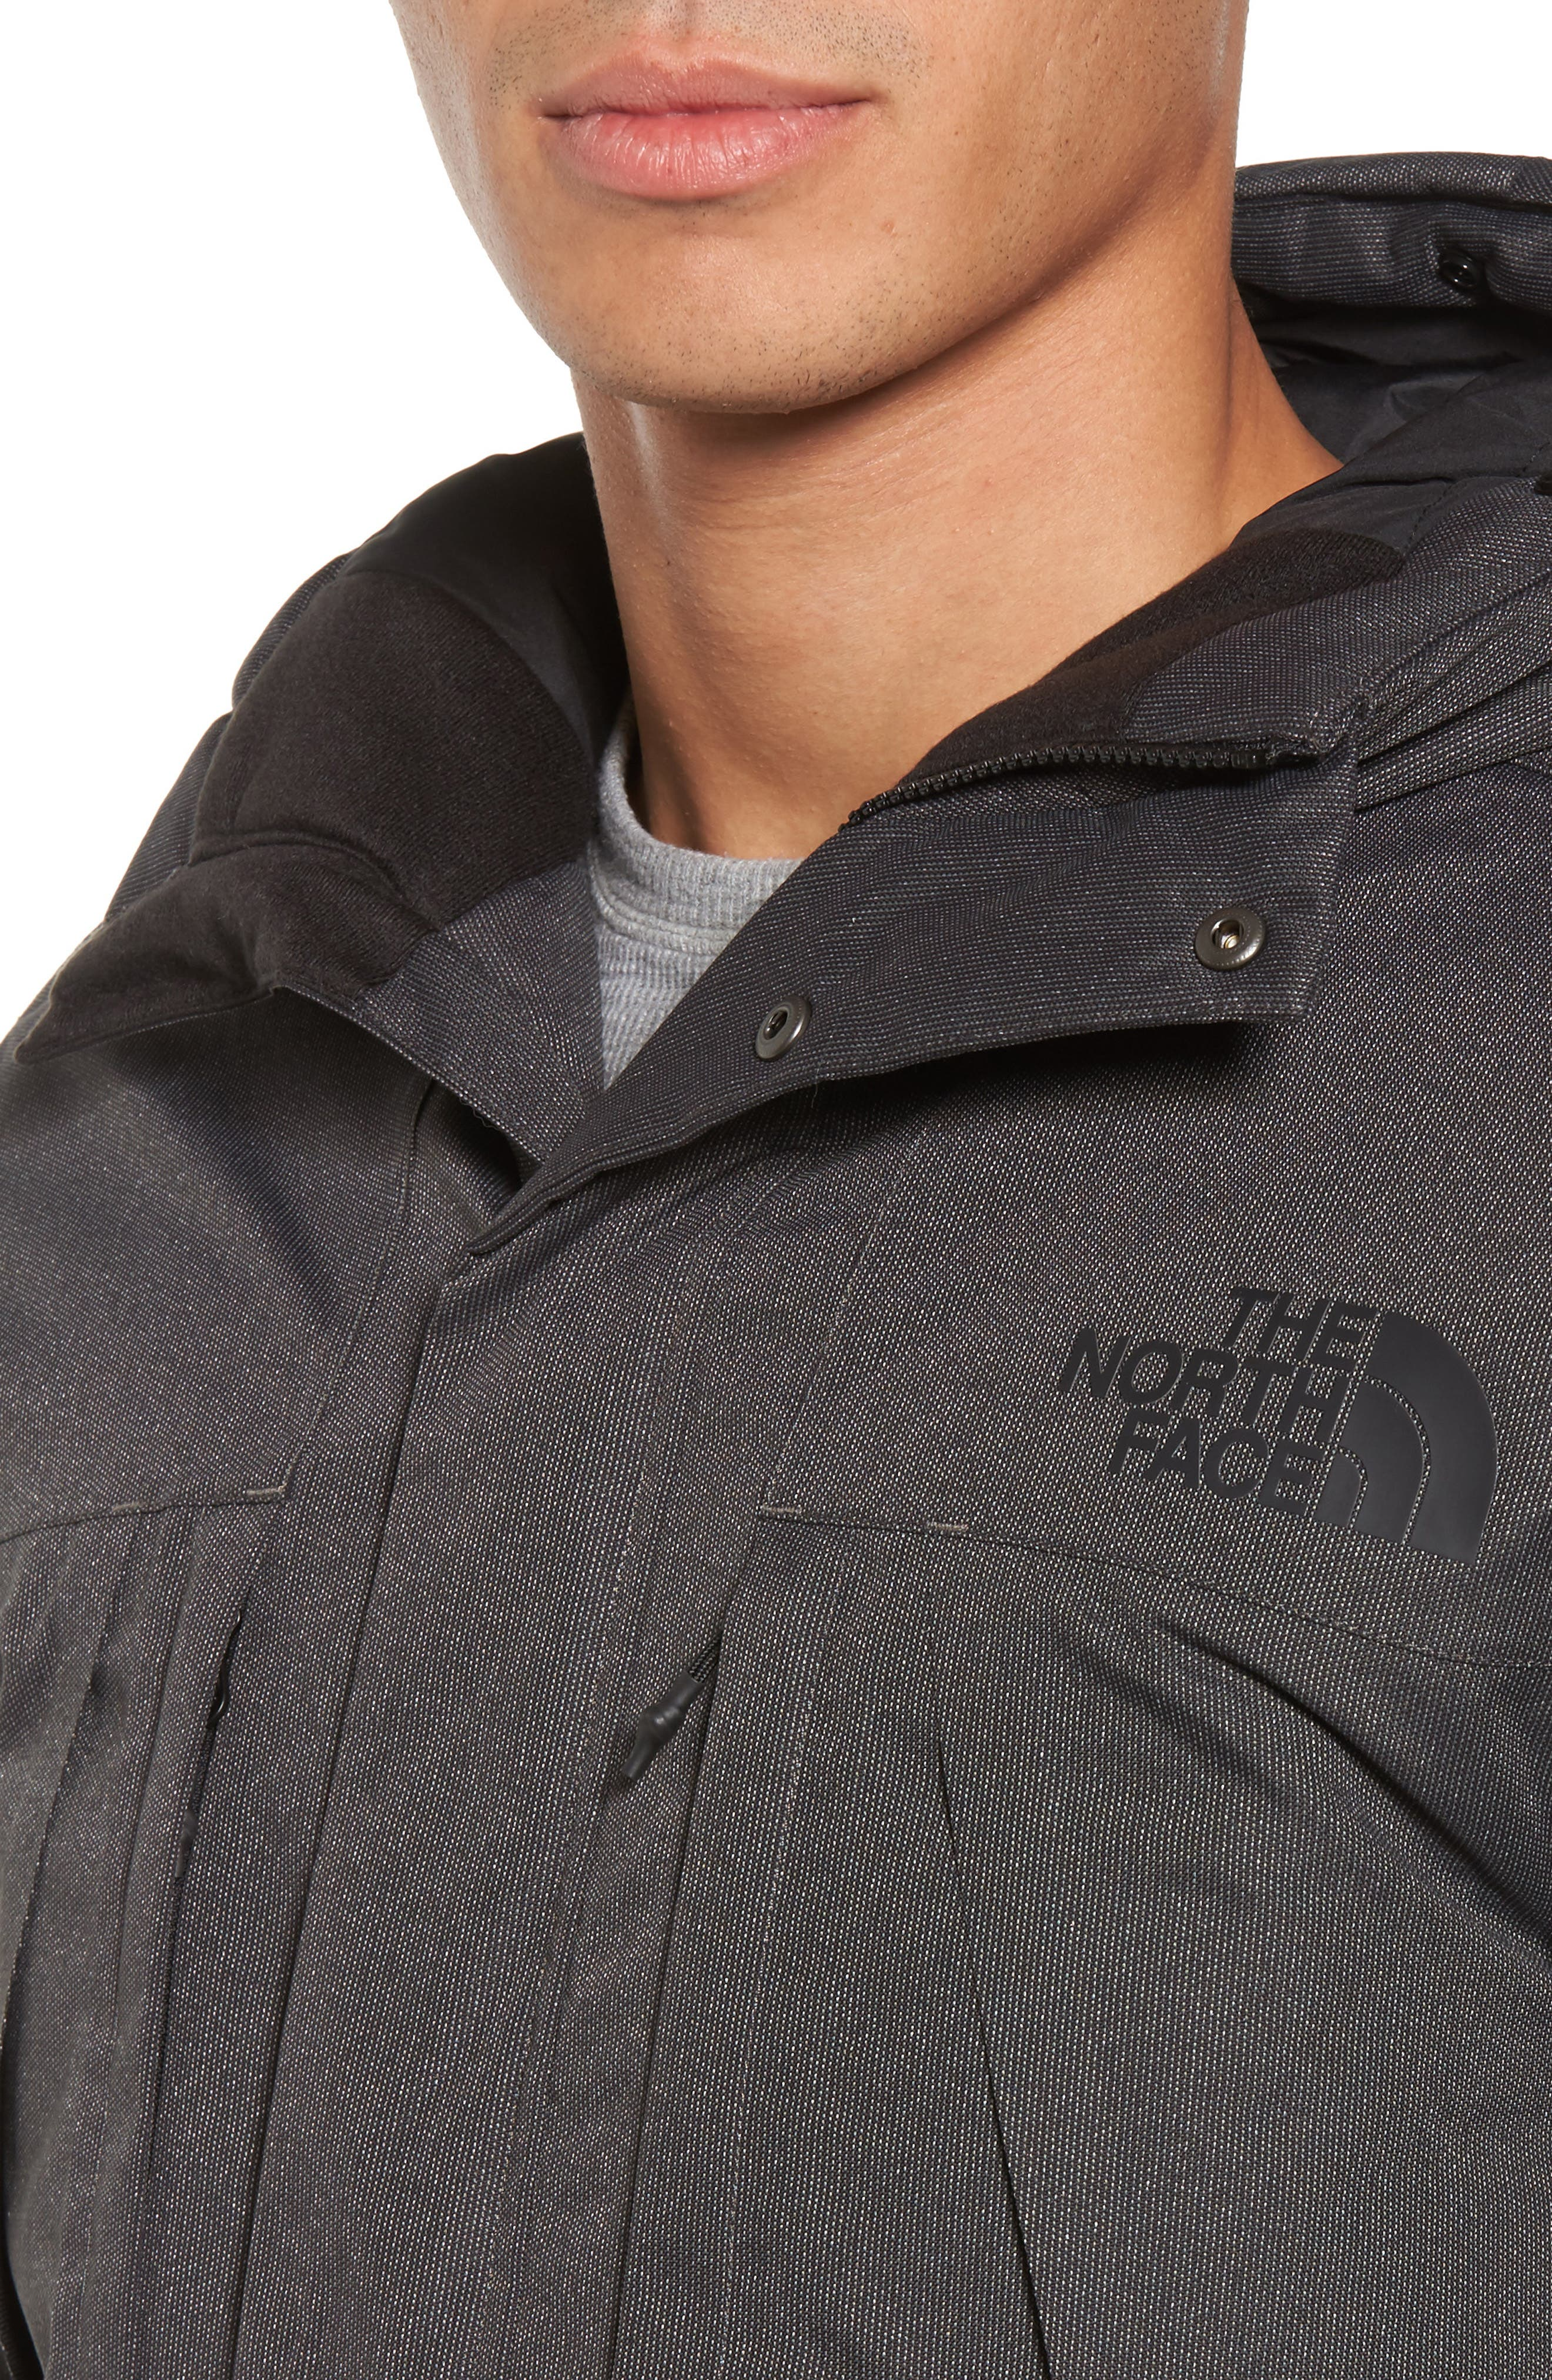 Outer Boroughs Waterproof Parka,                             Alternate thumbnail 4, color,                             Tnf Dark Grey Heather